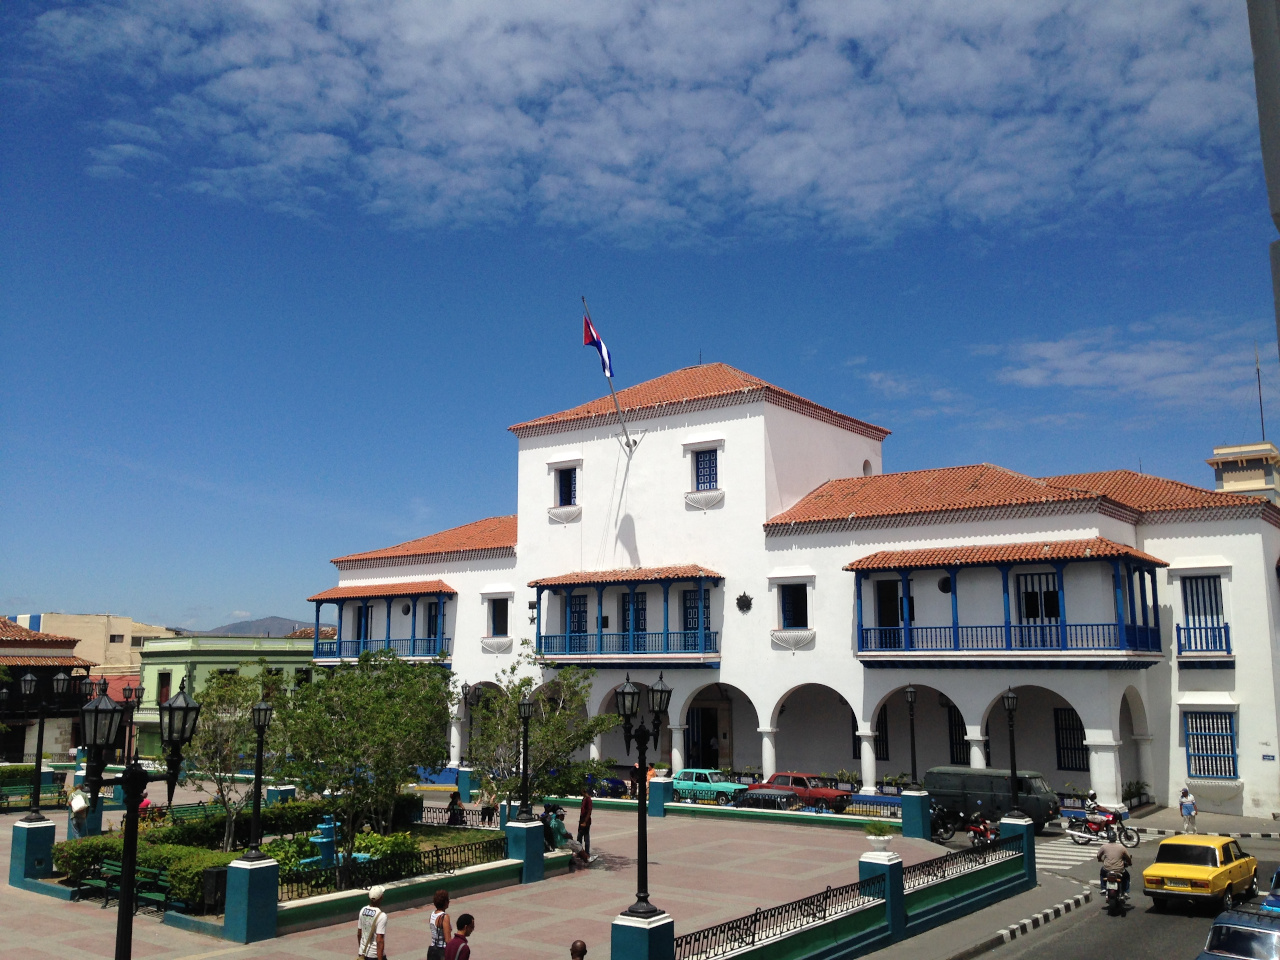 Santiago de Cuba. Best places to visit in East Cuba - the top things to do in Cuba